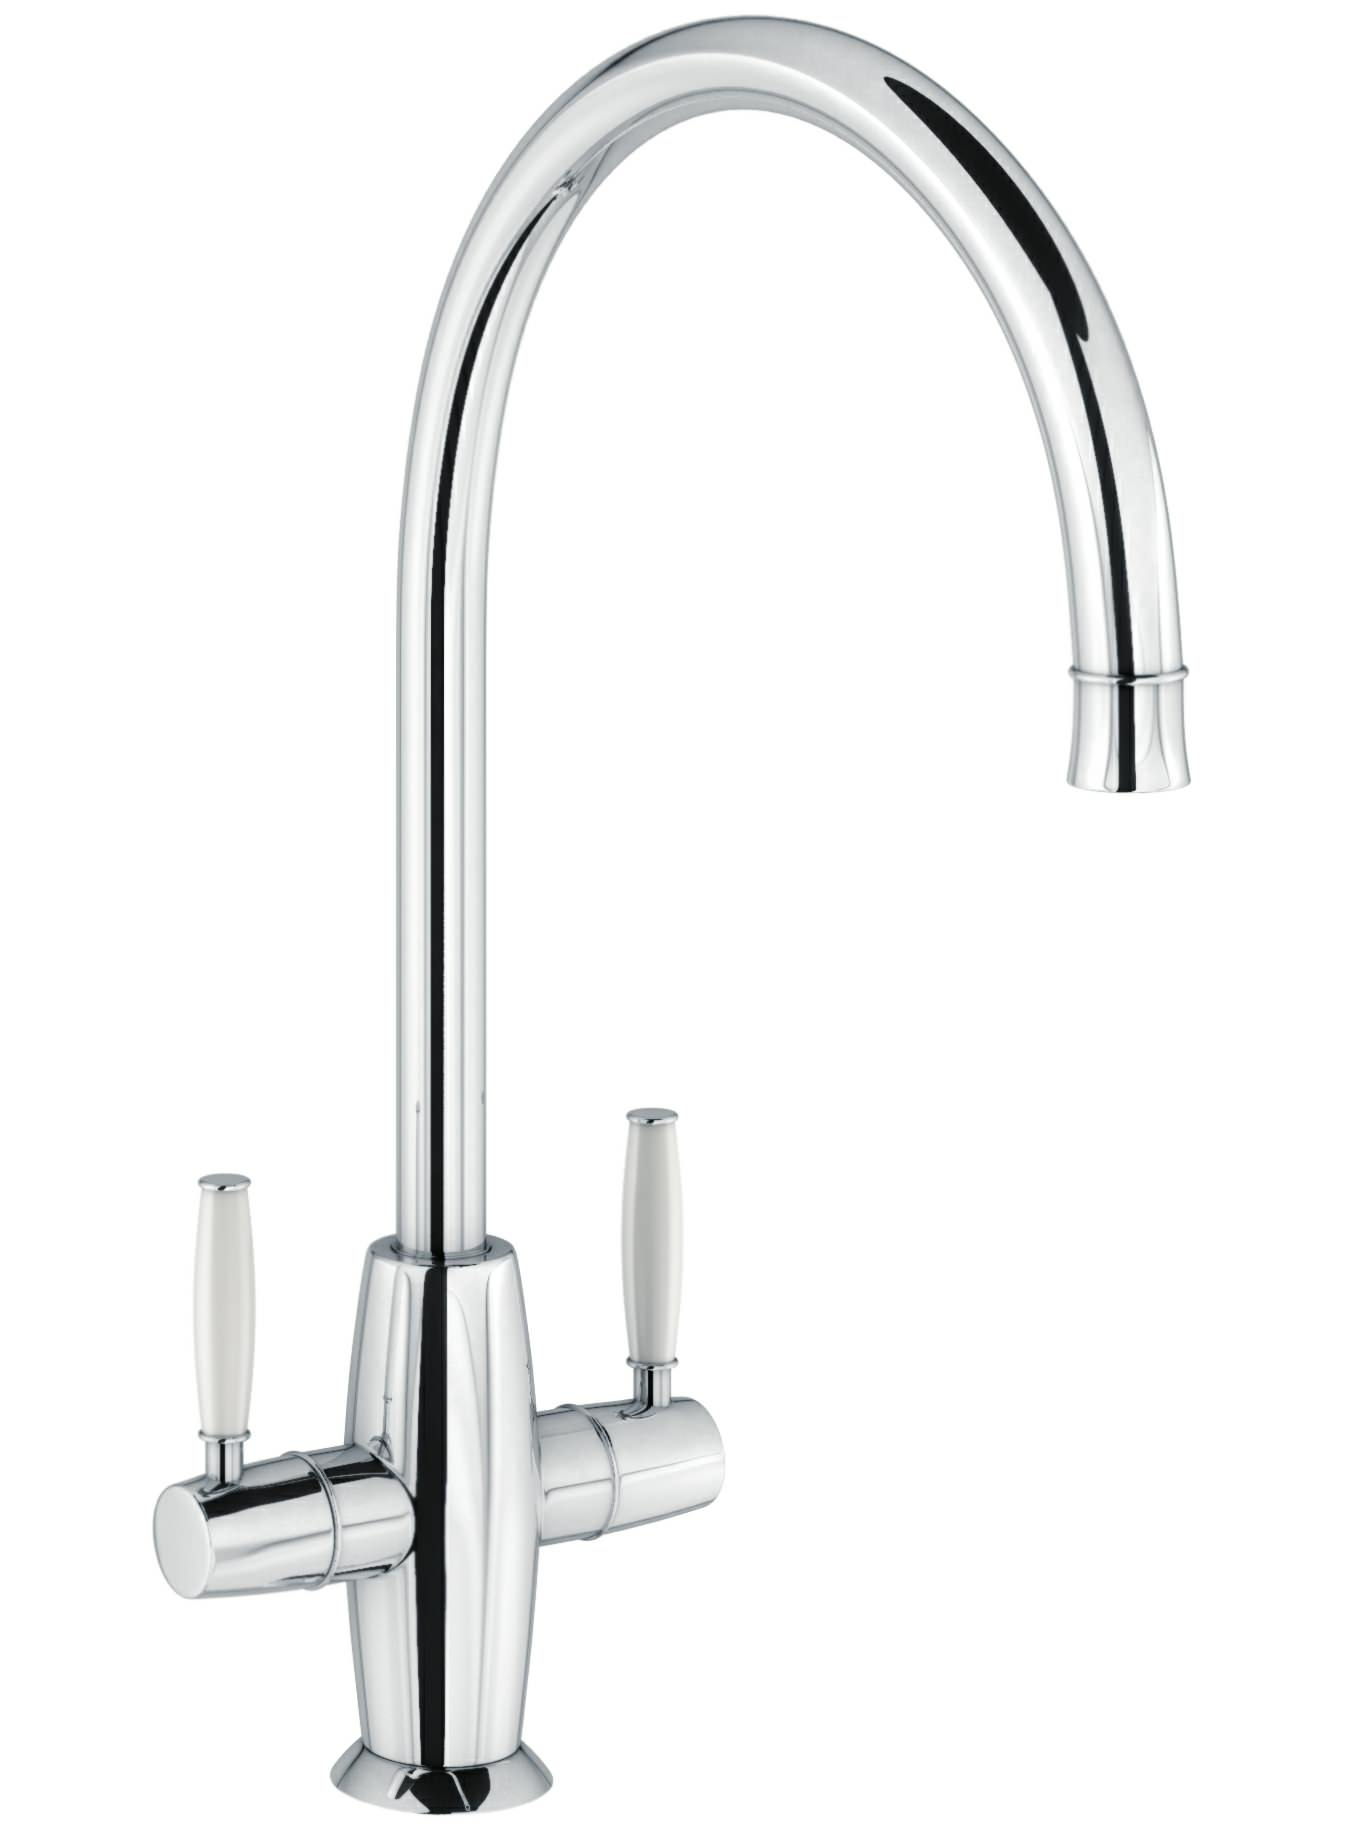 how to open kitchen mixer tap